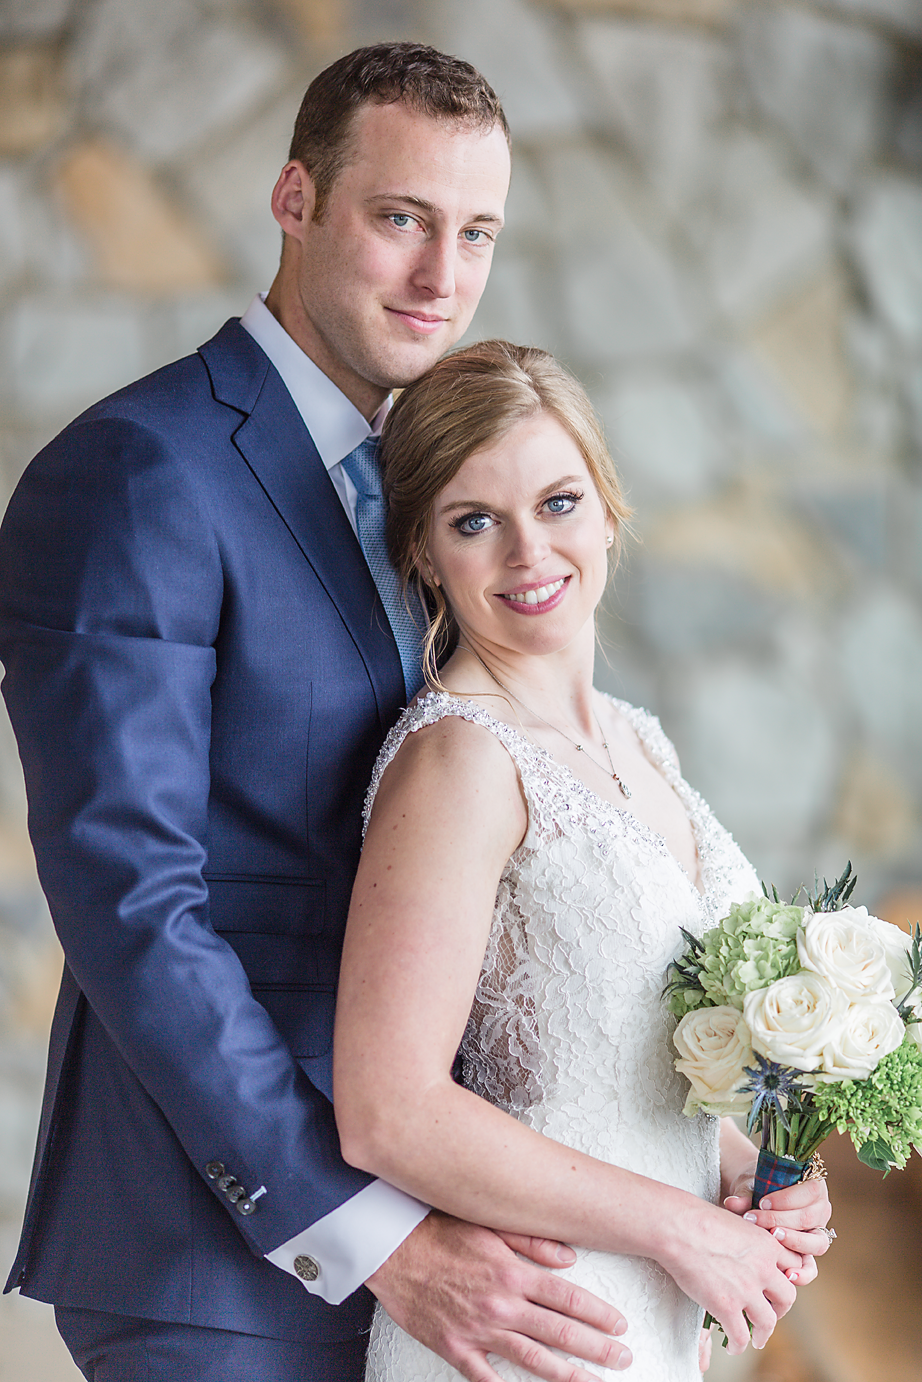 Dallas Wedding Photographer Glassy Mountain Chapel Greenville South Carolina scottish wedding bride and groom 2 kate marie portraiture.png